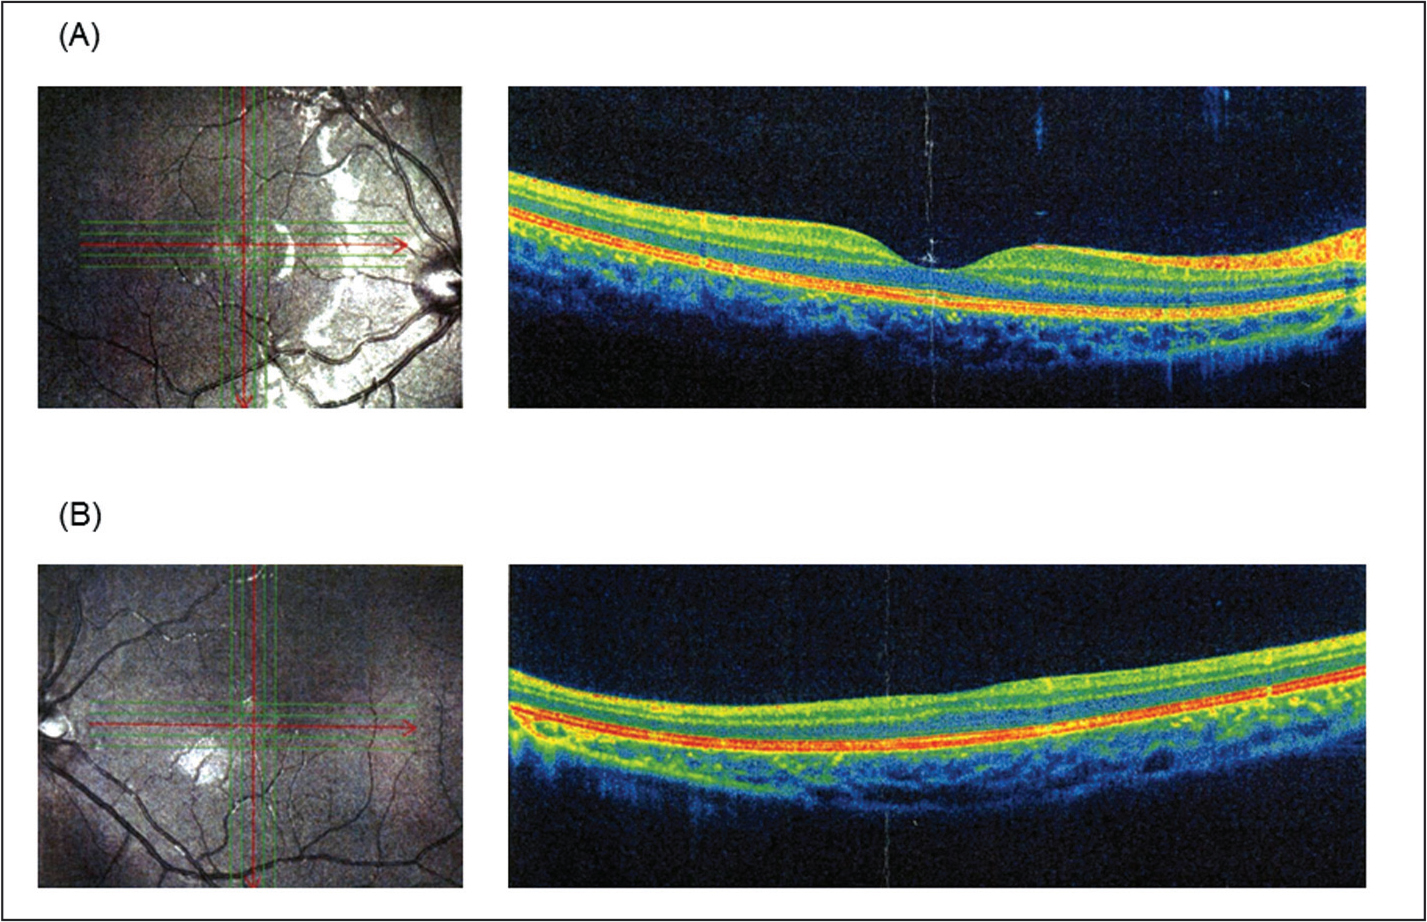 Spectral domain optical coherence tomography imaging. (A) The right eye appears normal. (B) The left eye shows foveal hypoplasia.